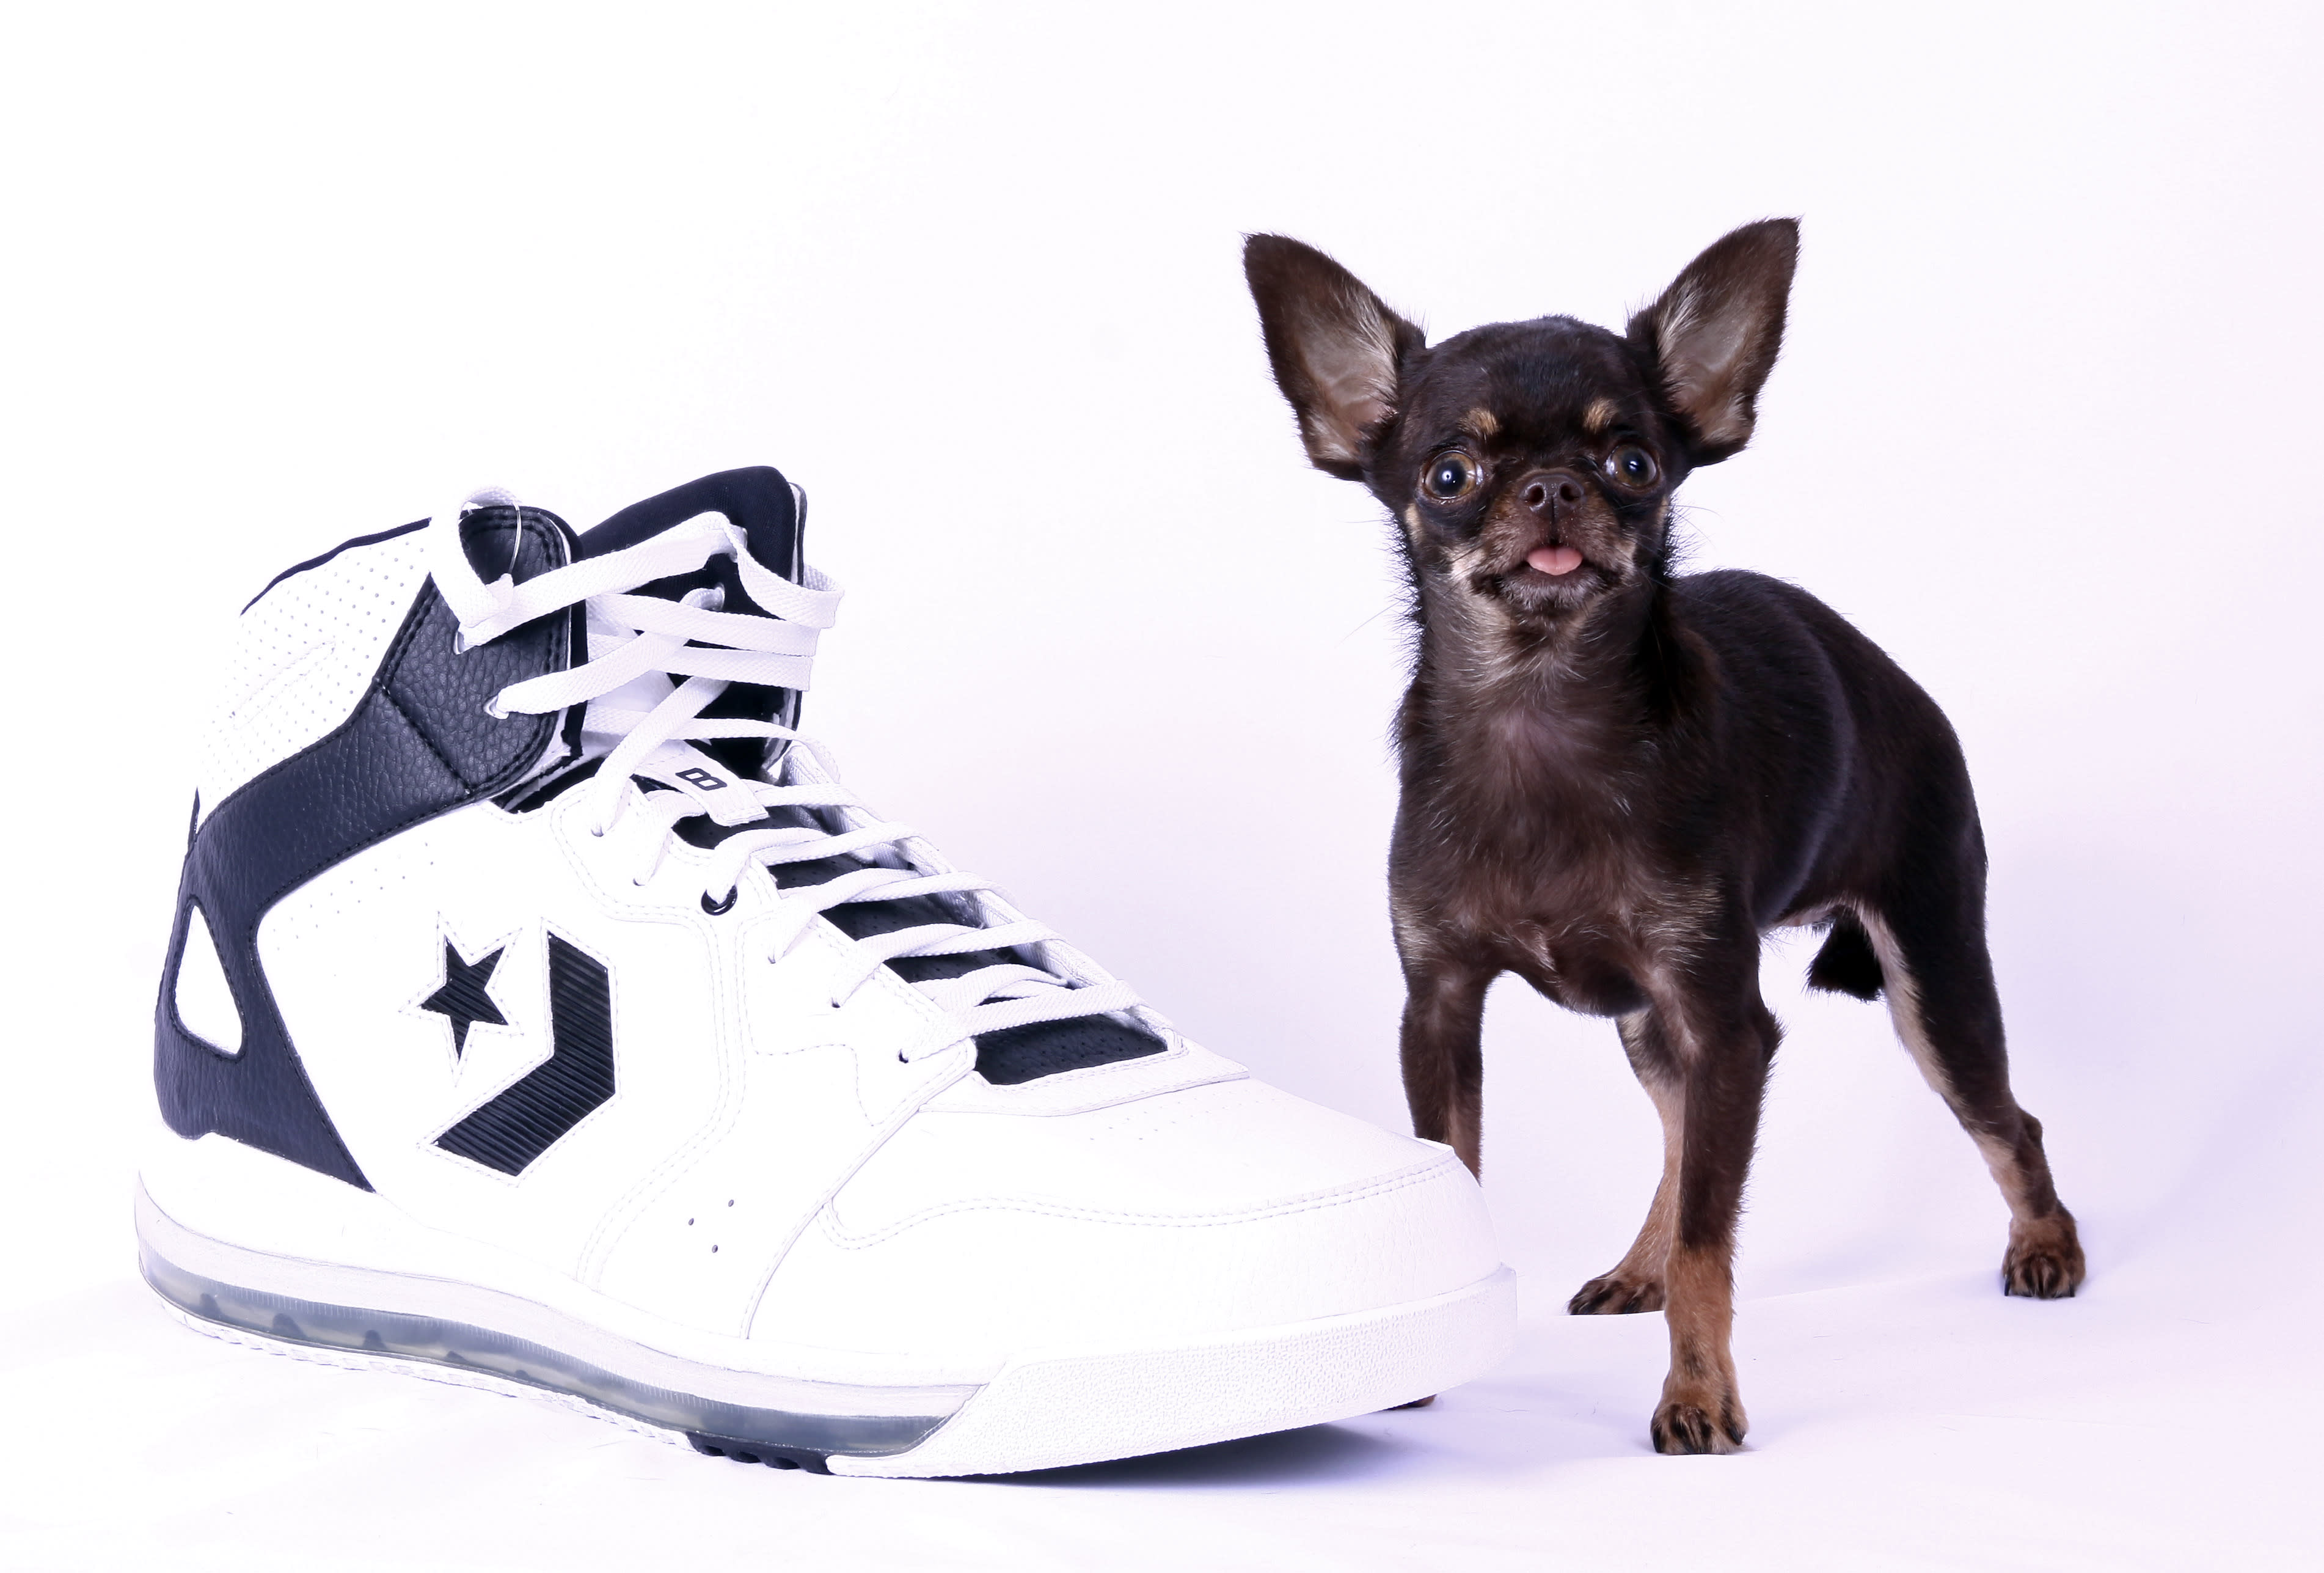 guinness worlds smallest dog is in puerto rico - Smallest Cat In The World Guinness 2013